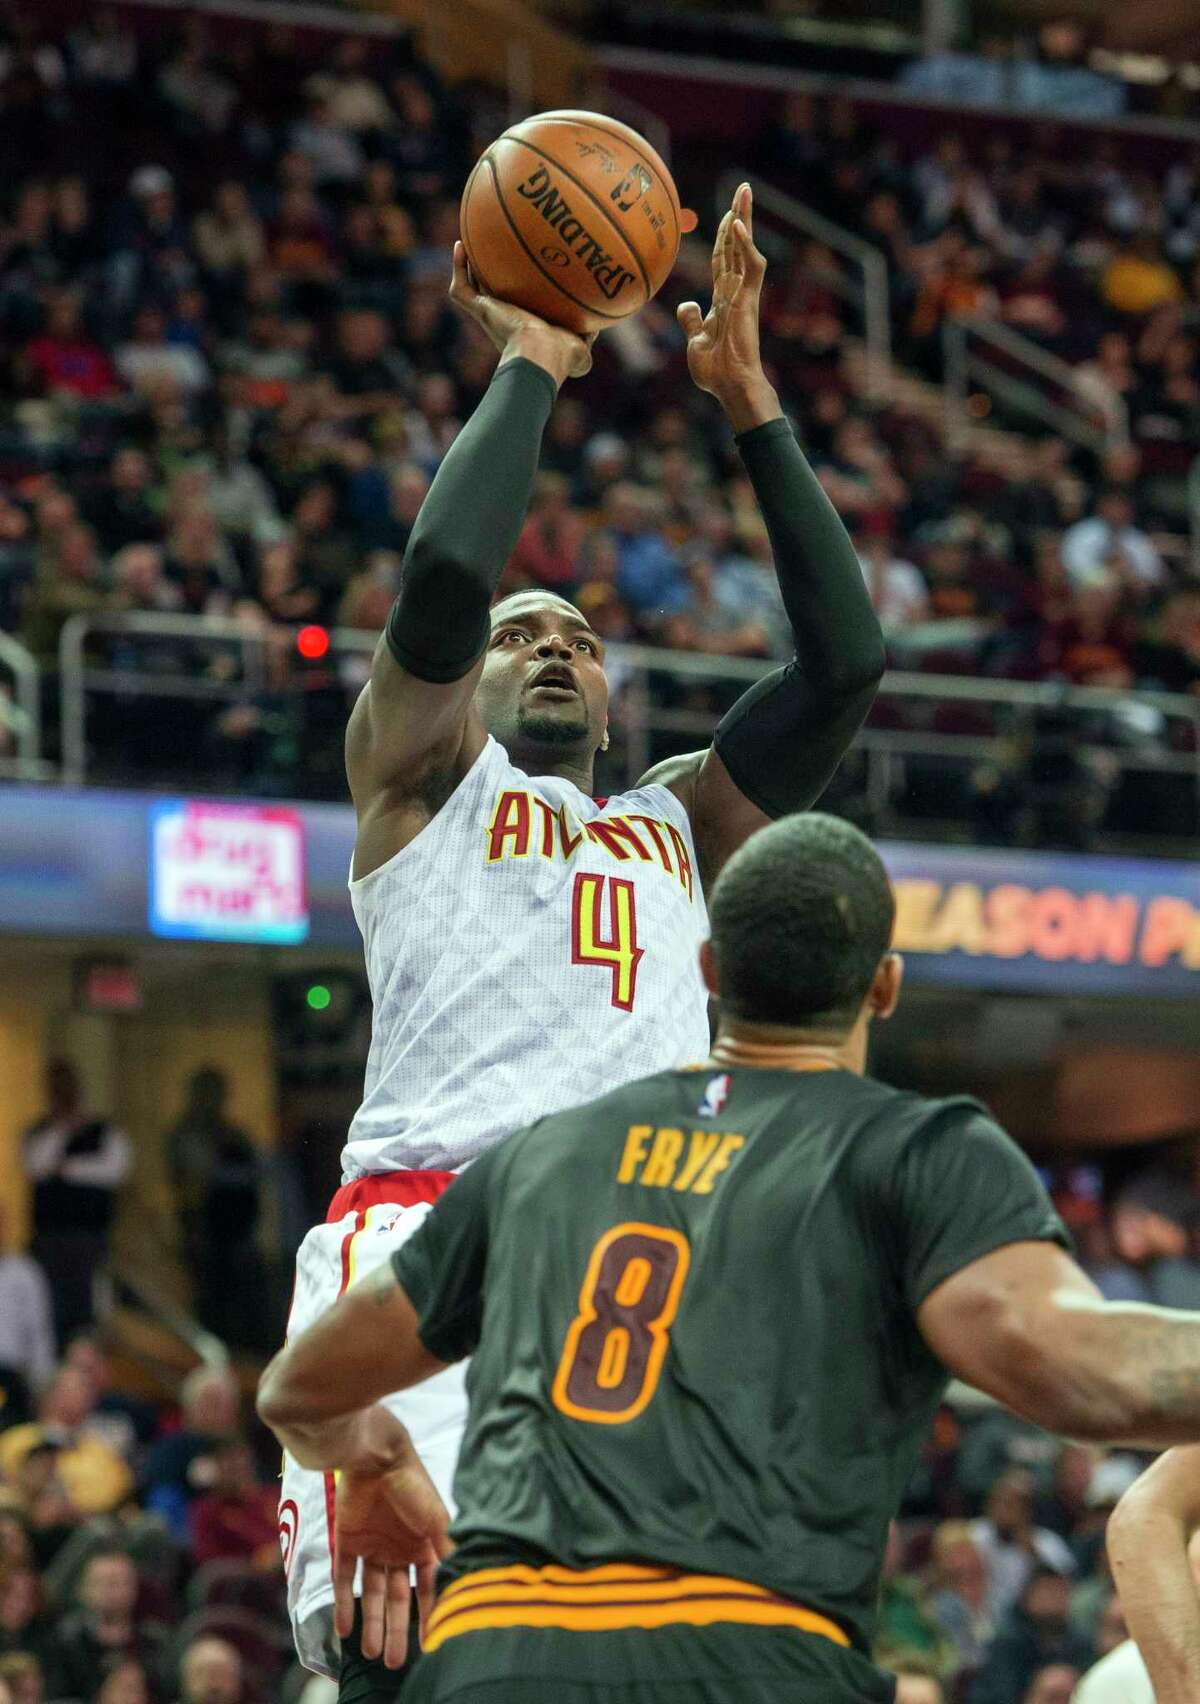 Acquiring Hawks forward Paul Millsap likely would require a sign-and-trade.